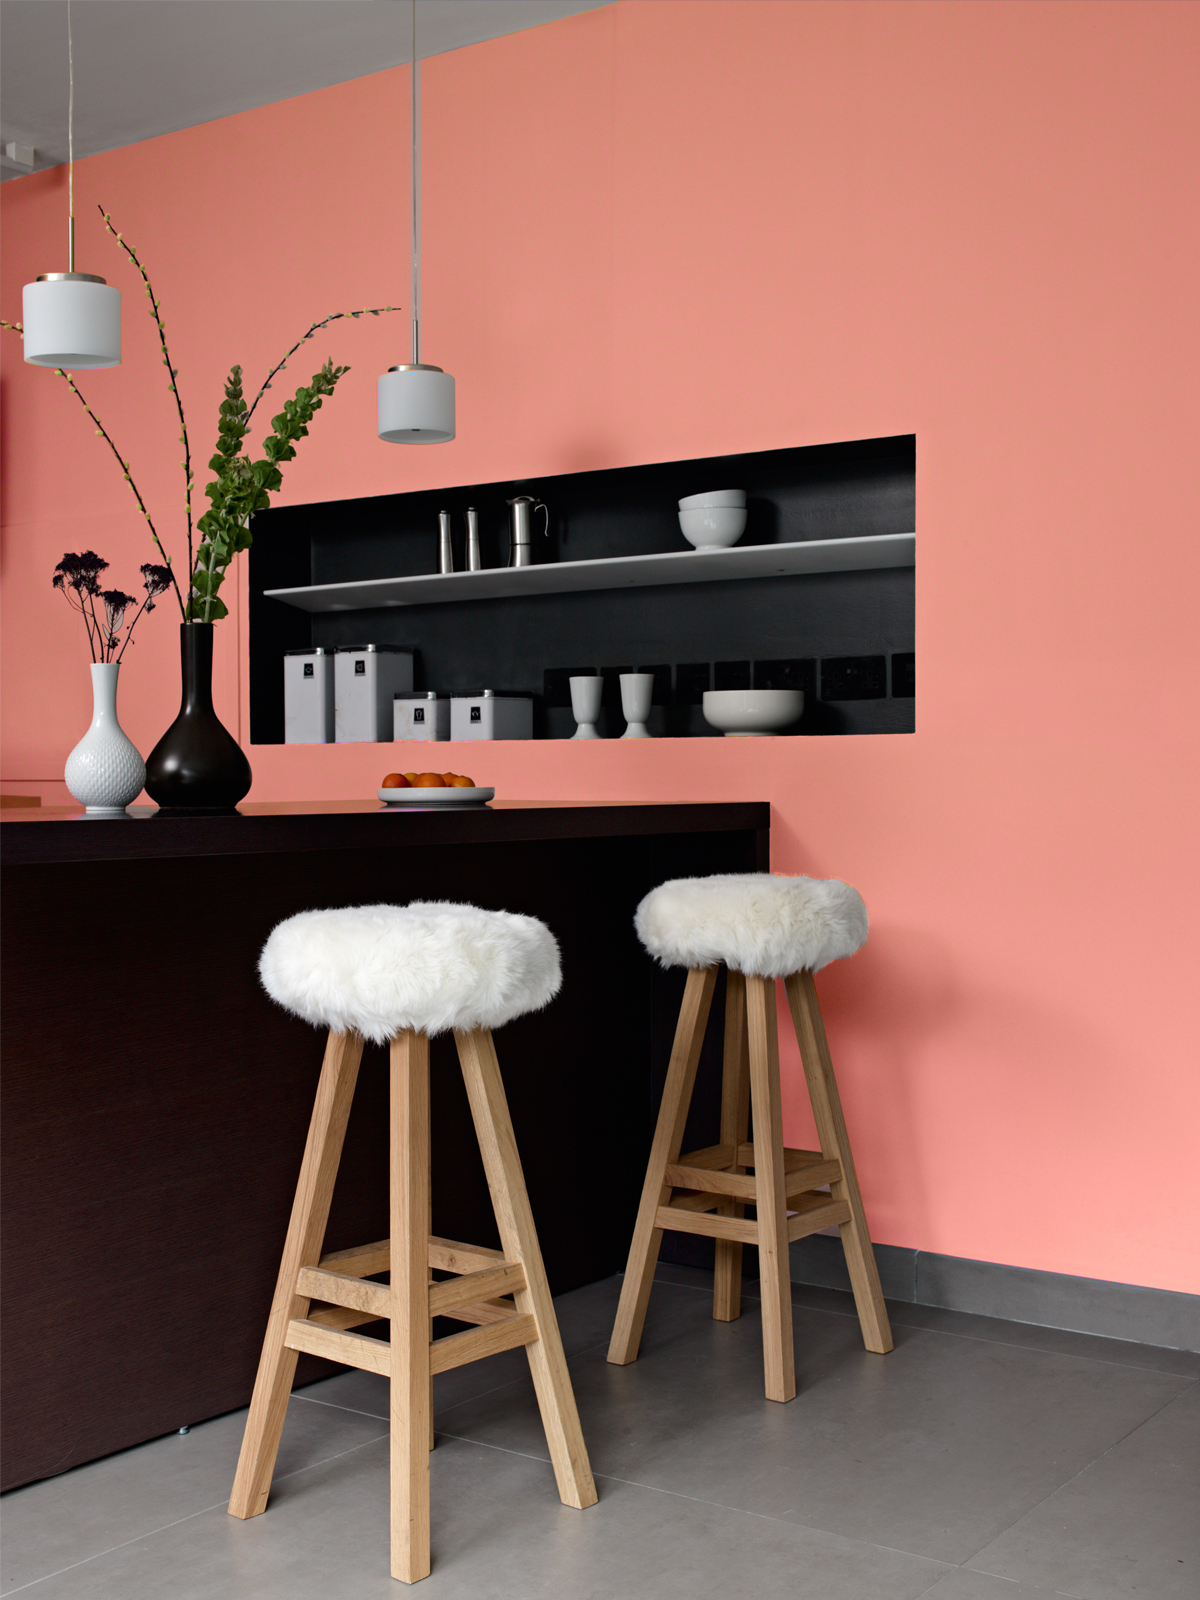 for immediate release dulux announces top colour picks. Black Bedroom Furniture Sets. Home Design Ideas